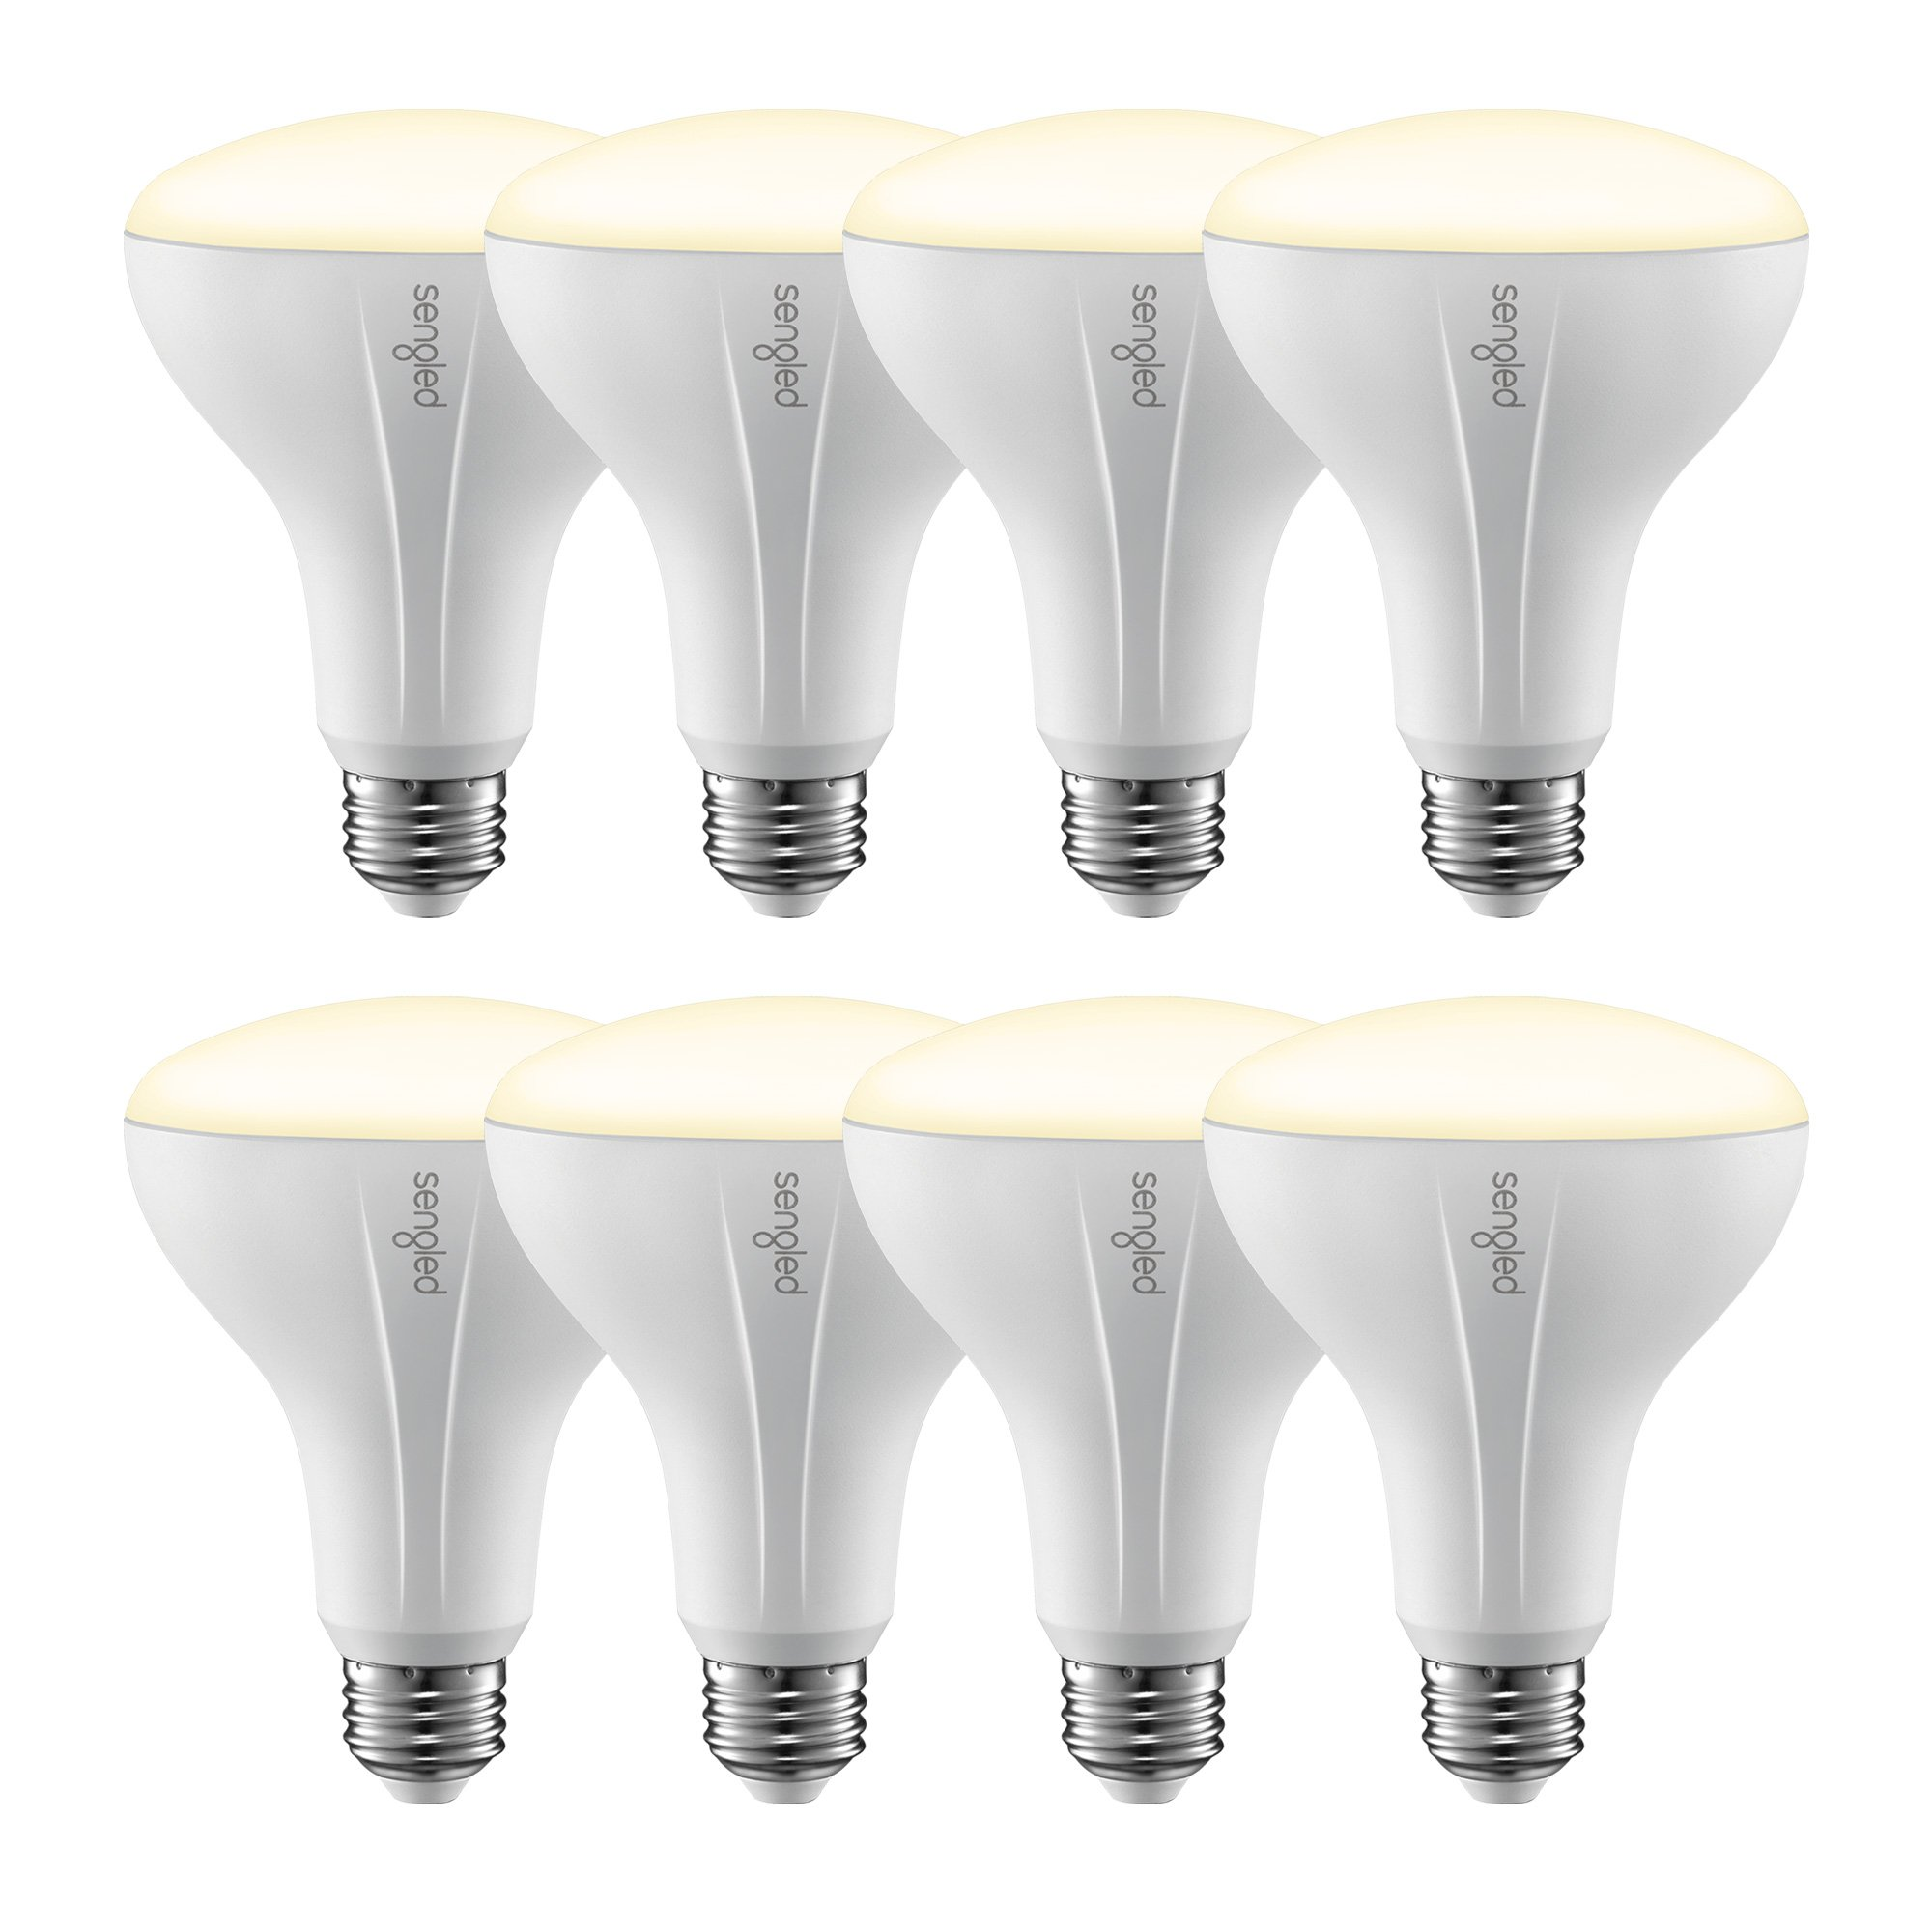 Sengled Element 8-Pack Smart Bulbs BR30 Dimmable Bulbs, Compatible with Samsung SmartThings Hub, Wink Hub and Echo Plus, Works with Alexa and Google Assistant(Hub Required), 3 Year Warranty